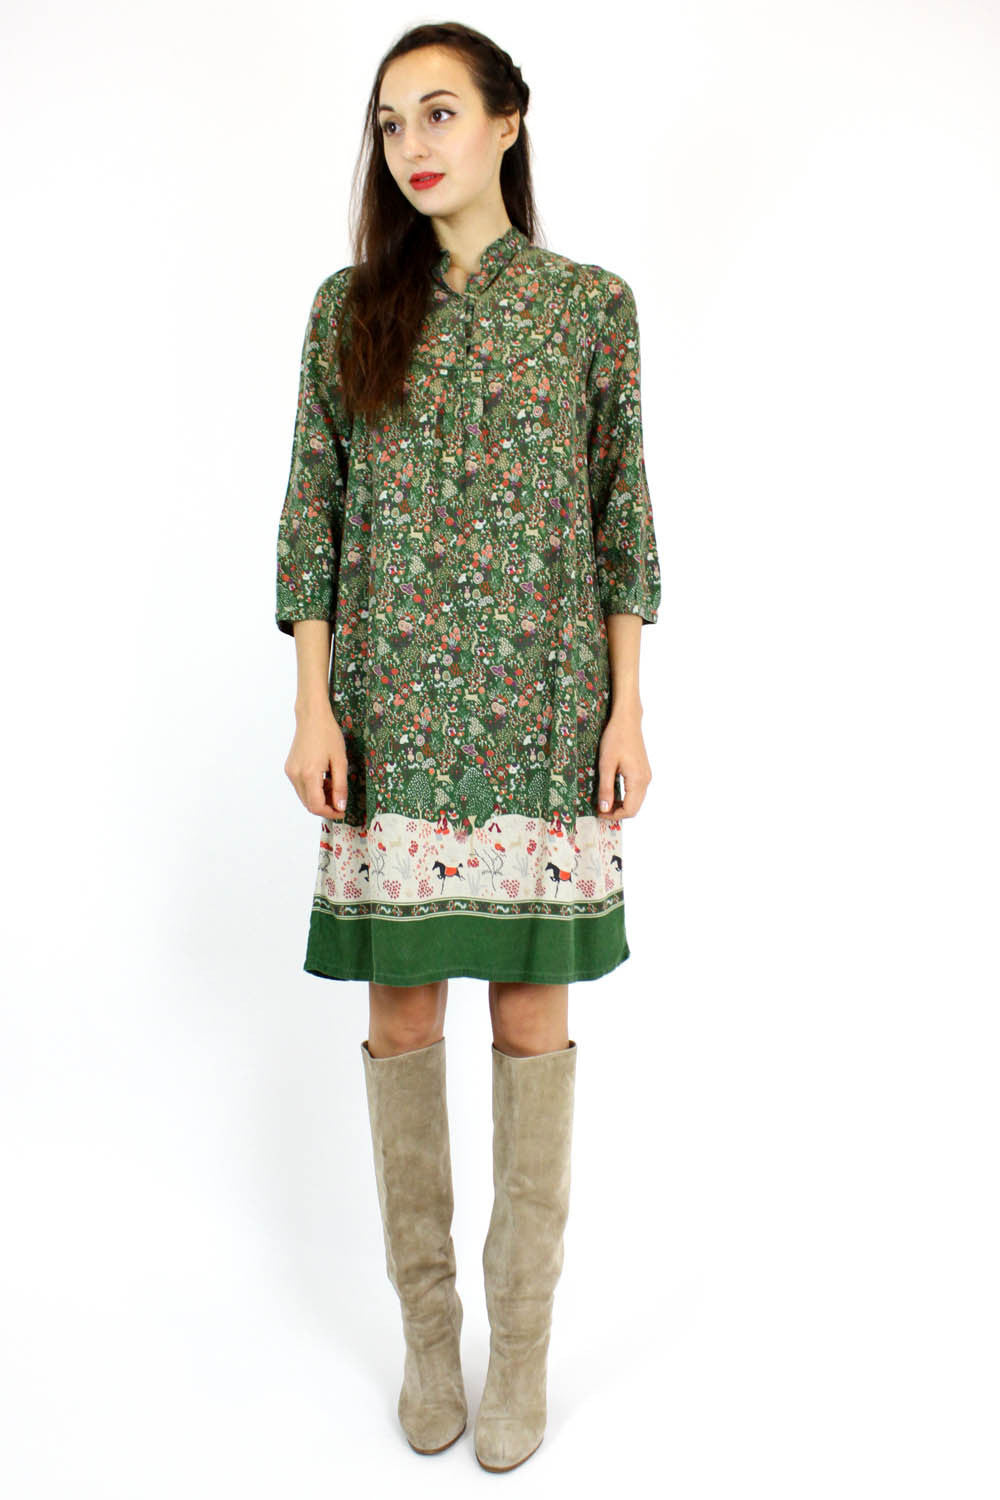 A.P.C. primitive print smock dress S